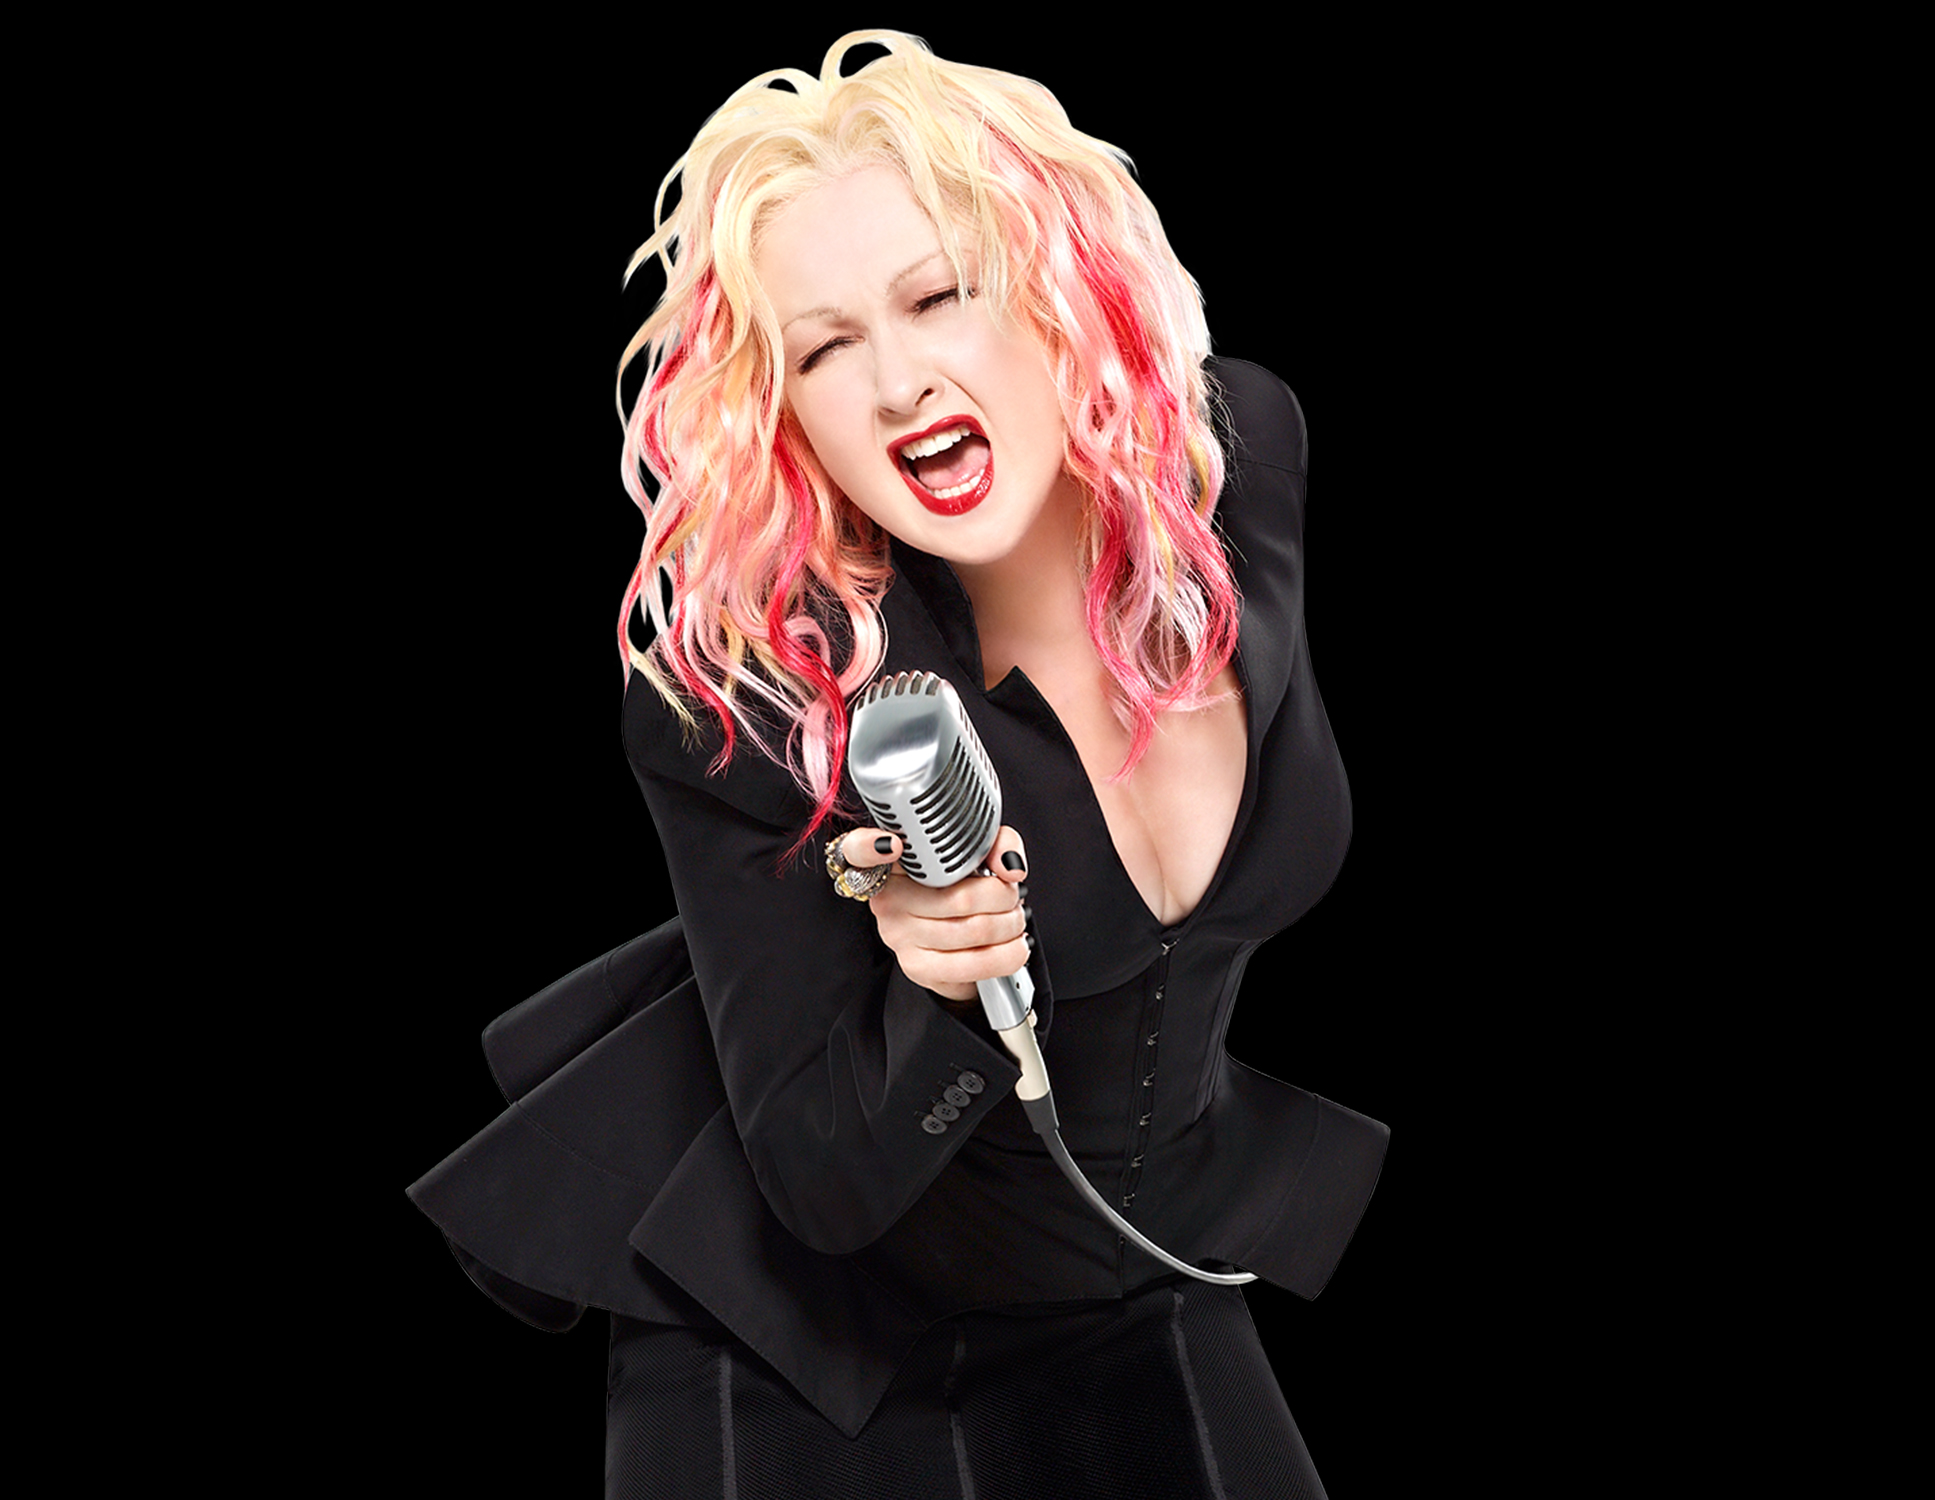 ROCK AND ROLL HALL OF FAME – INDUCT THESE WOMEN: Cyndi Lauper